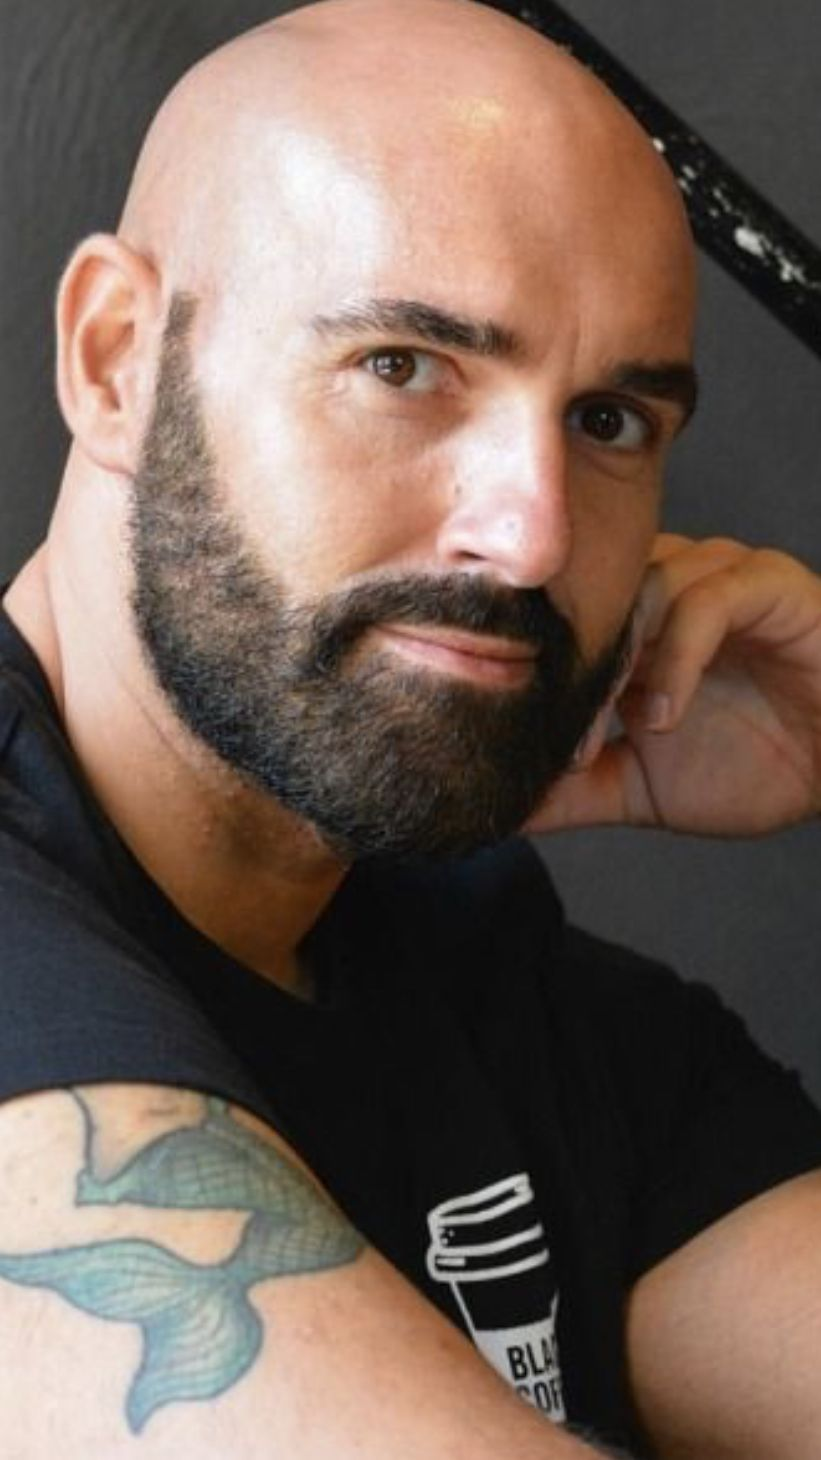 Pin By Chad Perkins On Chad S Facial Hair Intrest Bald